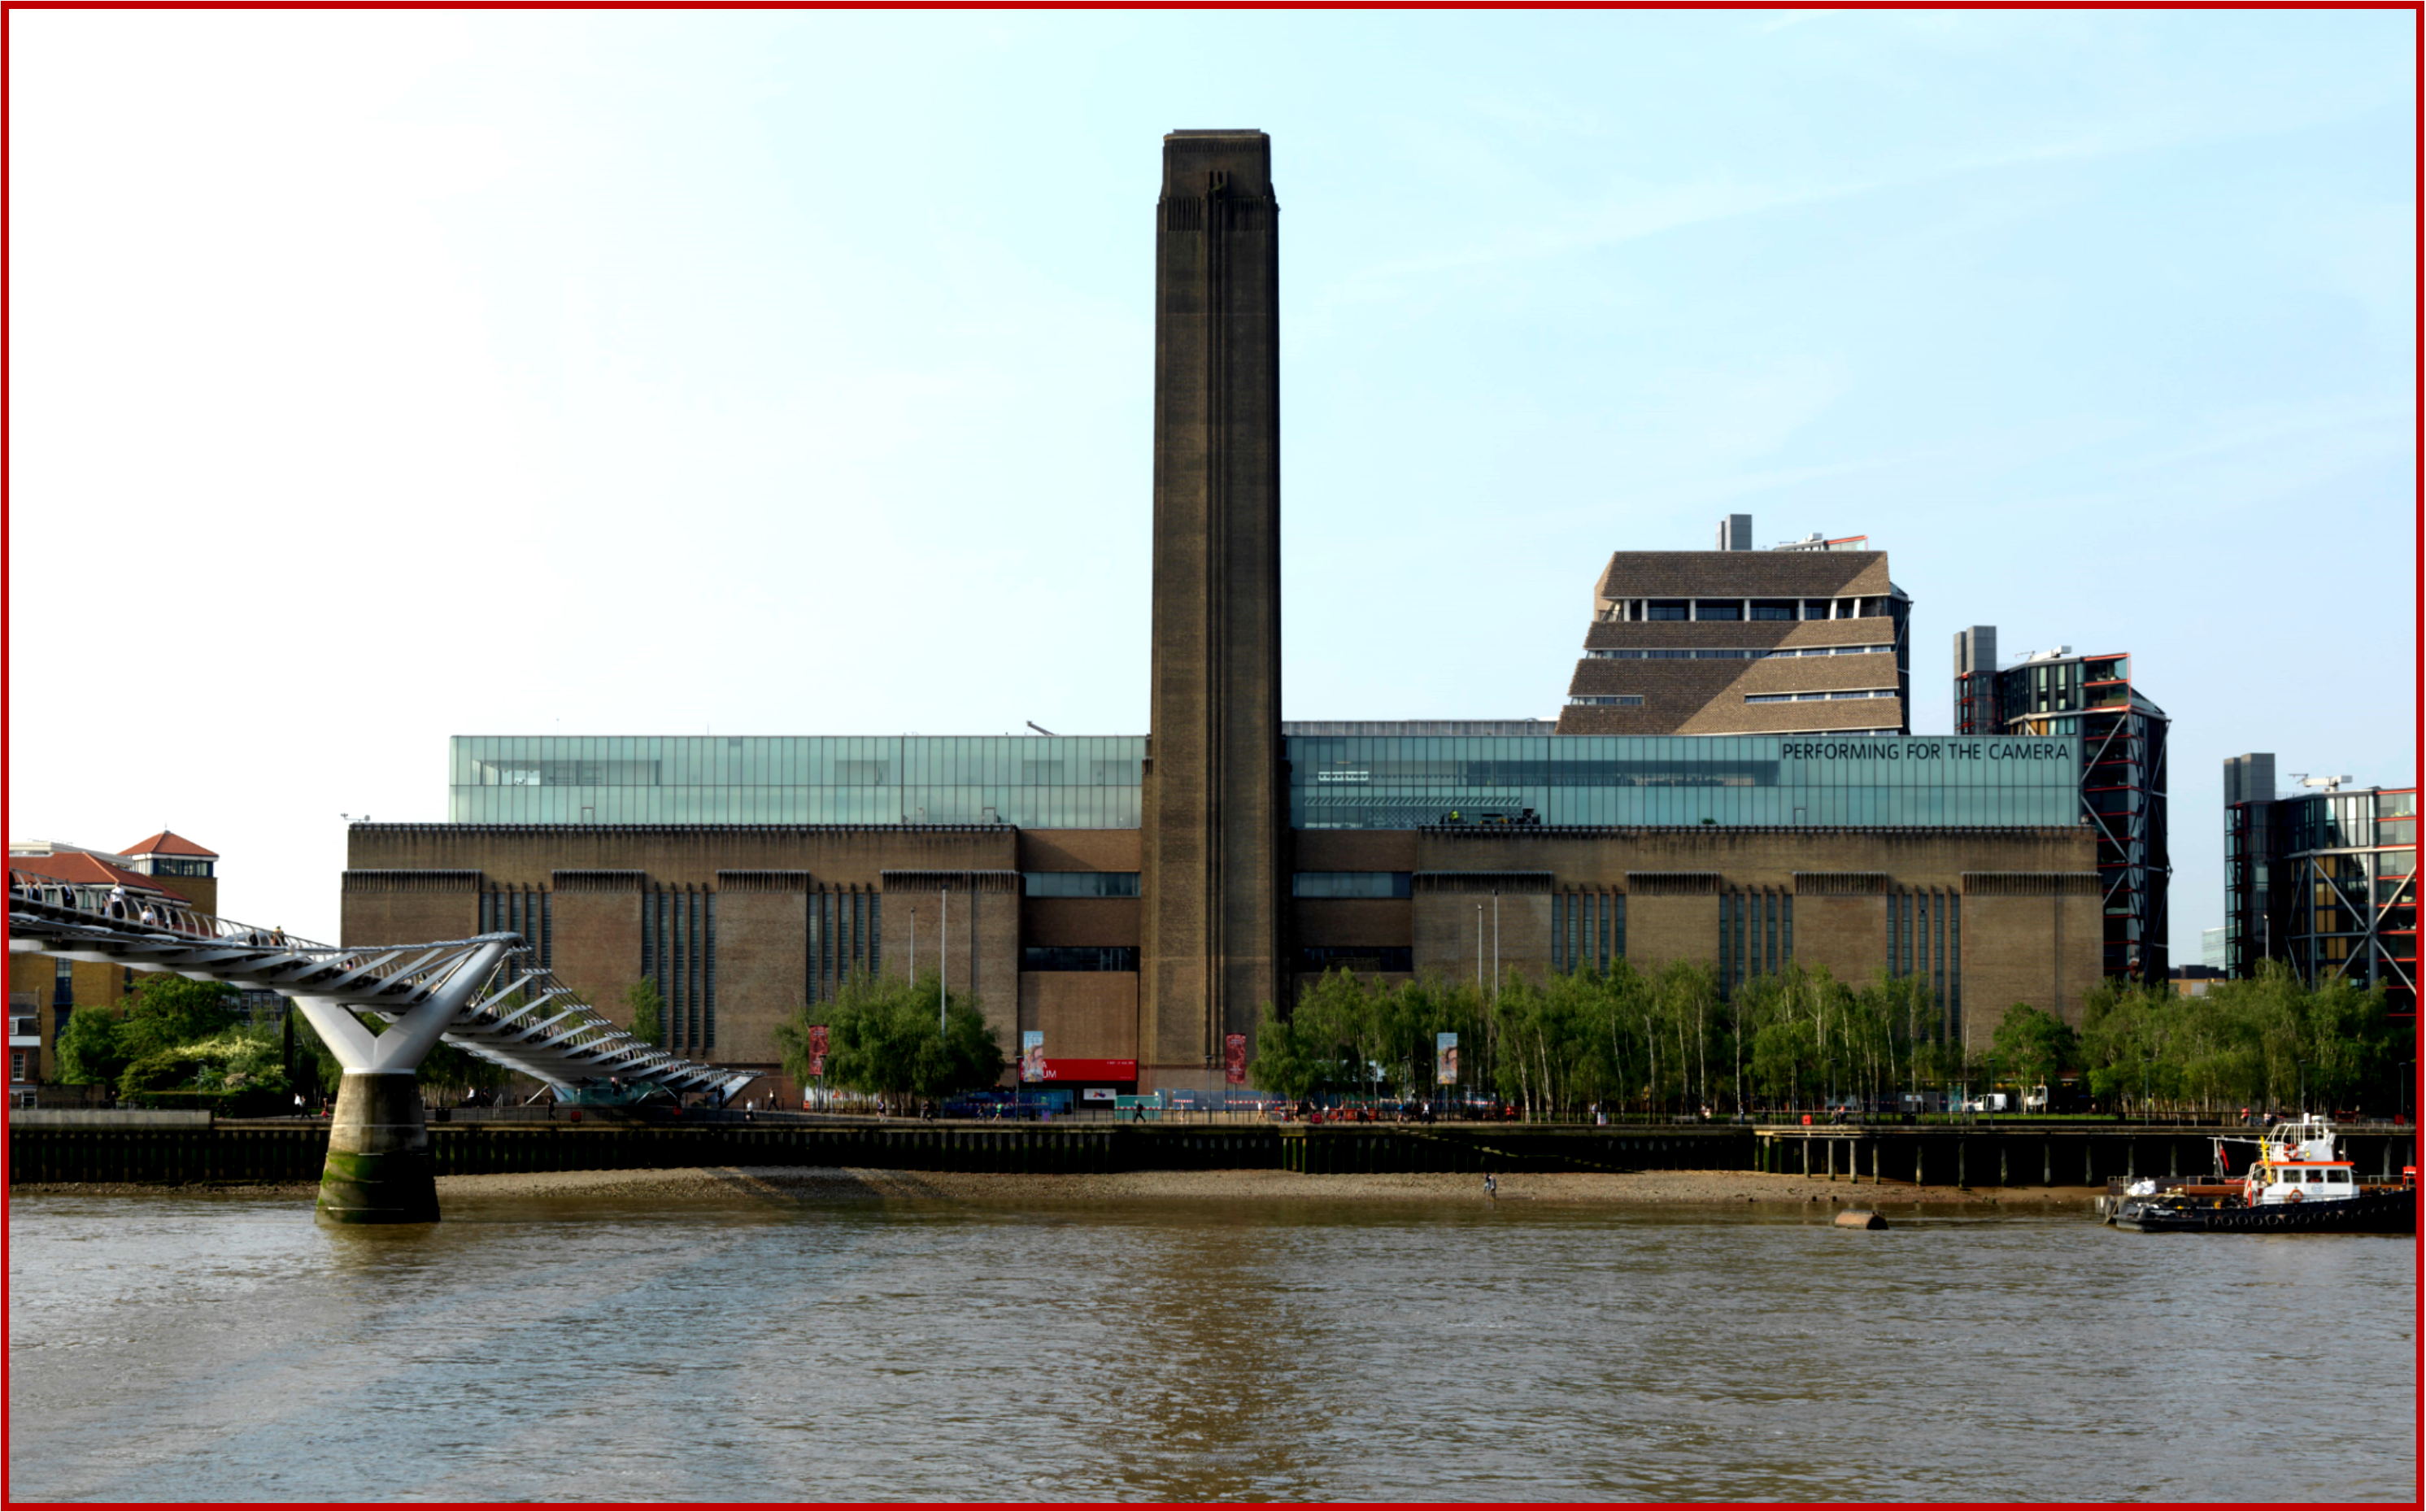 AutoInformed.com on Tate Modern